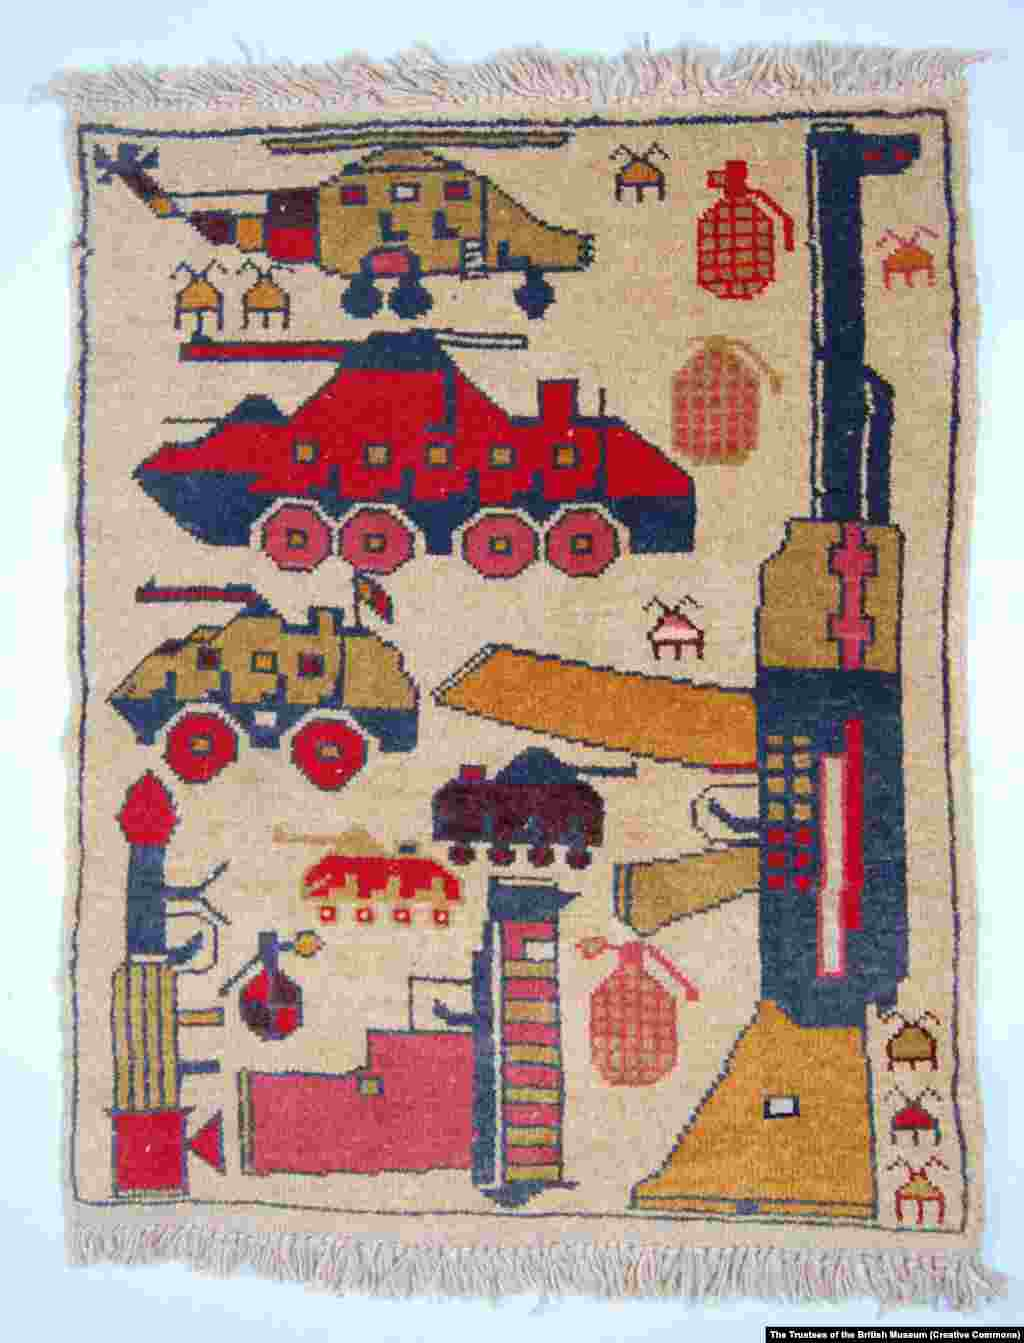 A colorful weave of weaponry, including a Soviet-made rocket-propelled grenade (lower left). Since the end of the Soviet occupation in 1988, Afghanistan's war rugs have evolved to illustrate the conflicts that have followed.